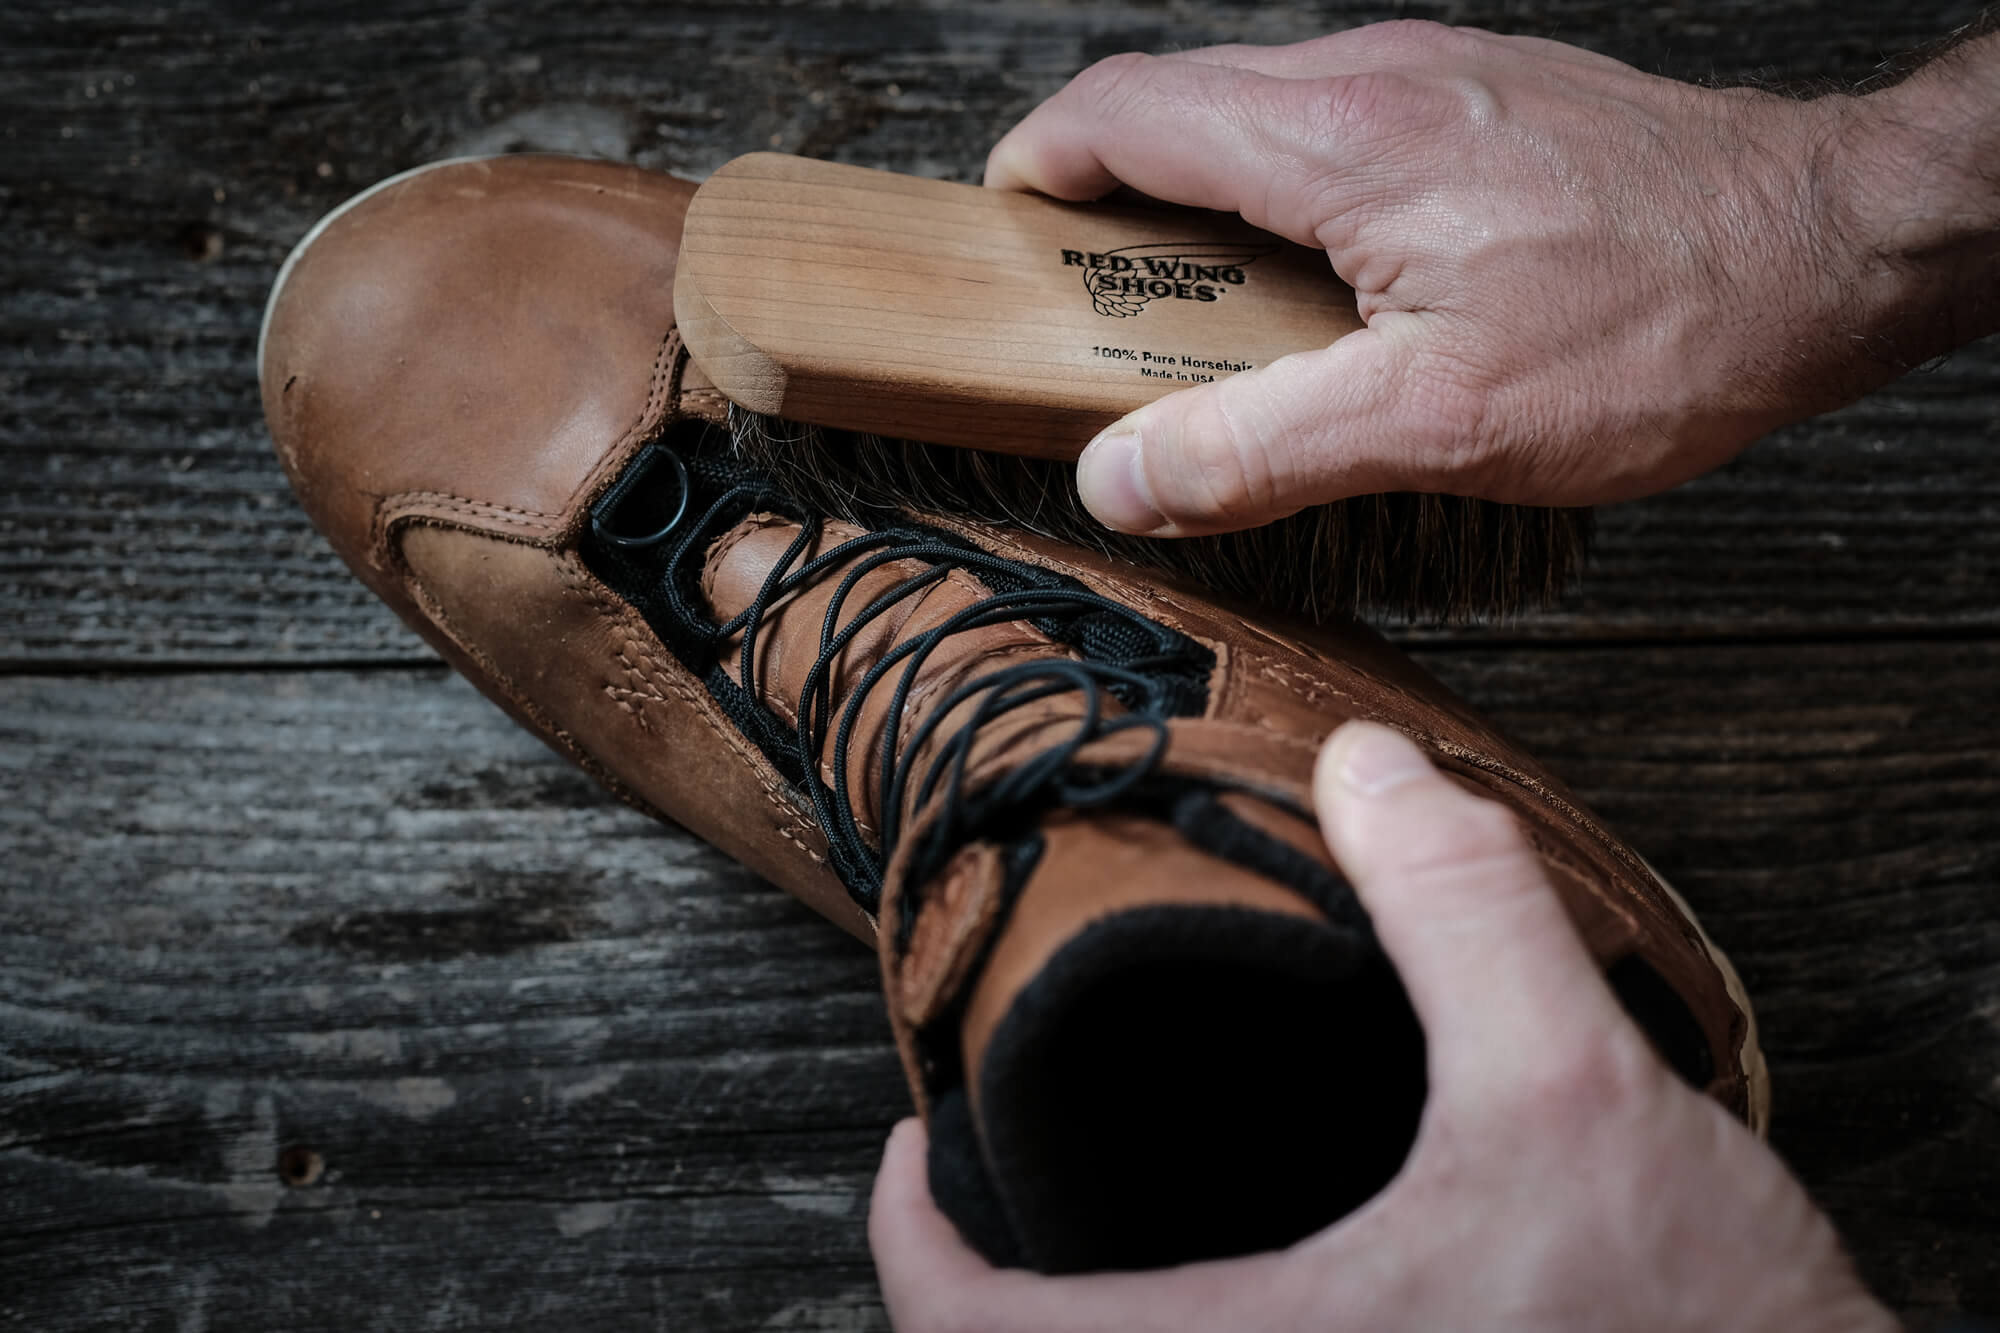 45NRTH Red Wing Wölvhammer cycling boot being brushed with Red Wing cleaning brush